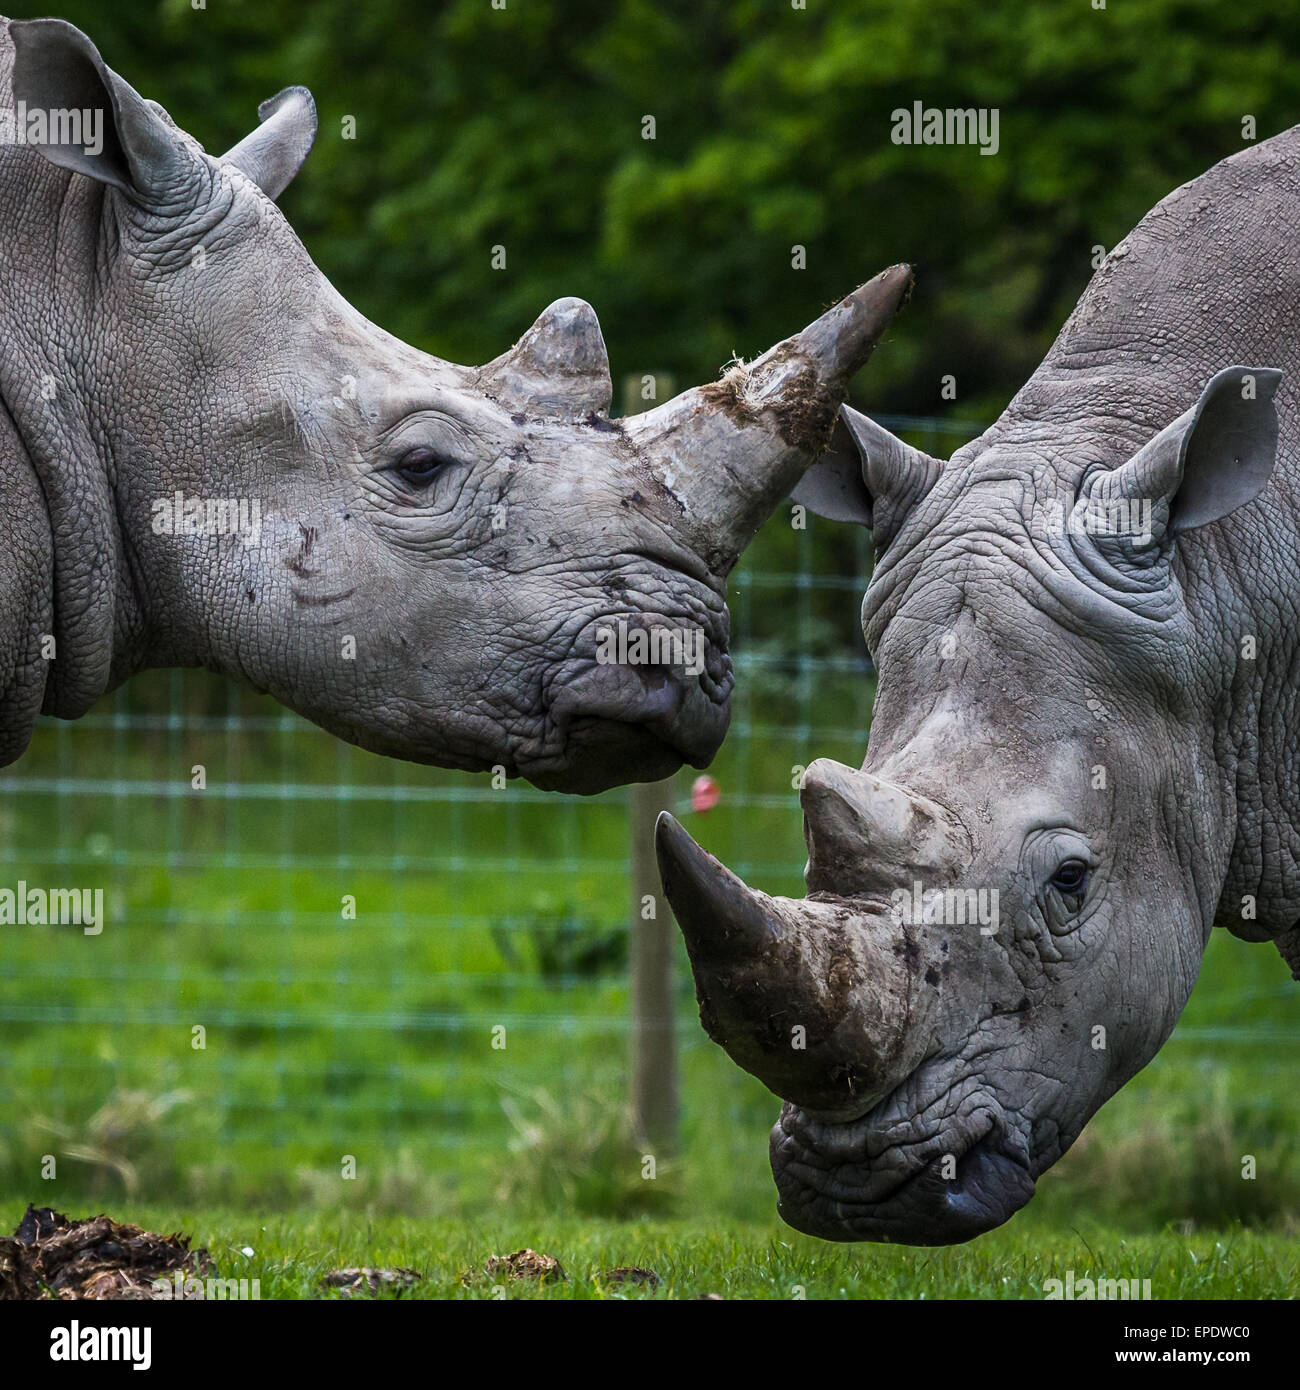 White rhino's preparing to lock horns together. - Stock Image